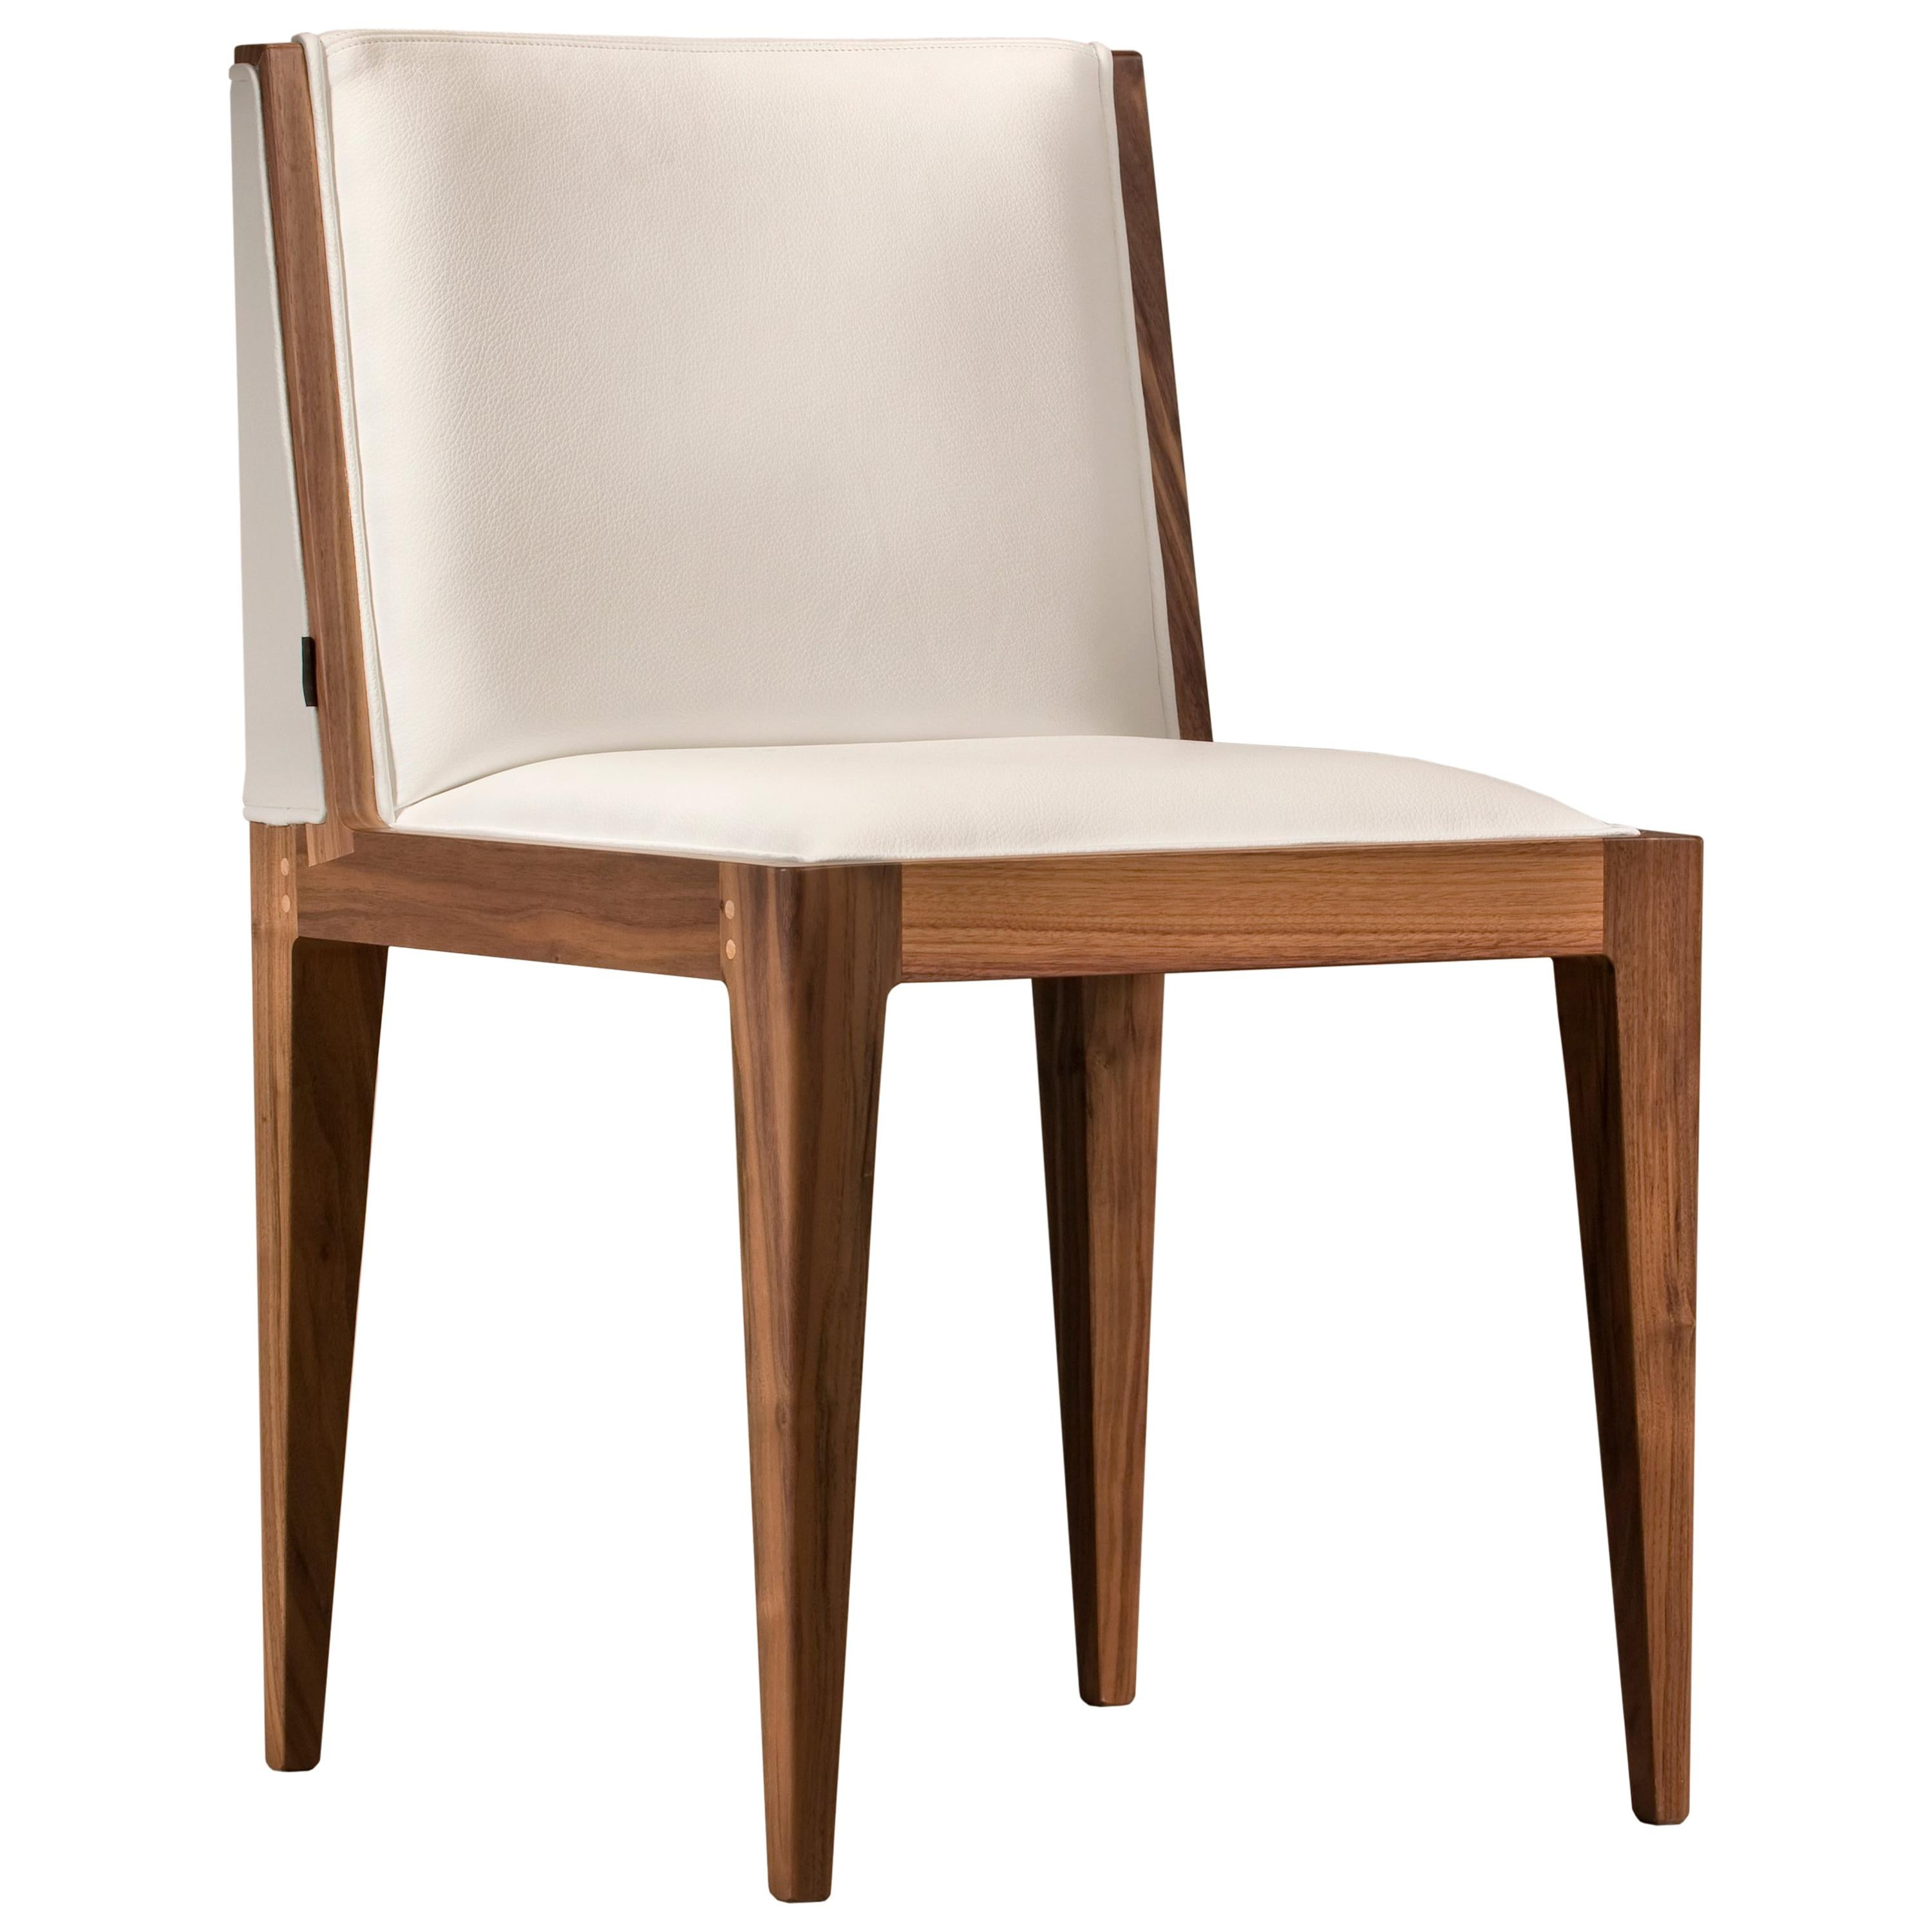 Contemporary Upholstered Chair Made of Ash Wood, by Morelato